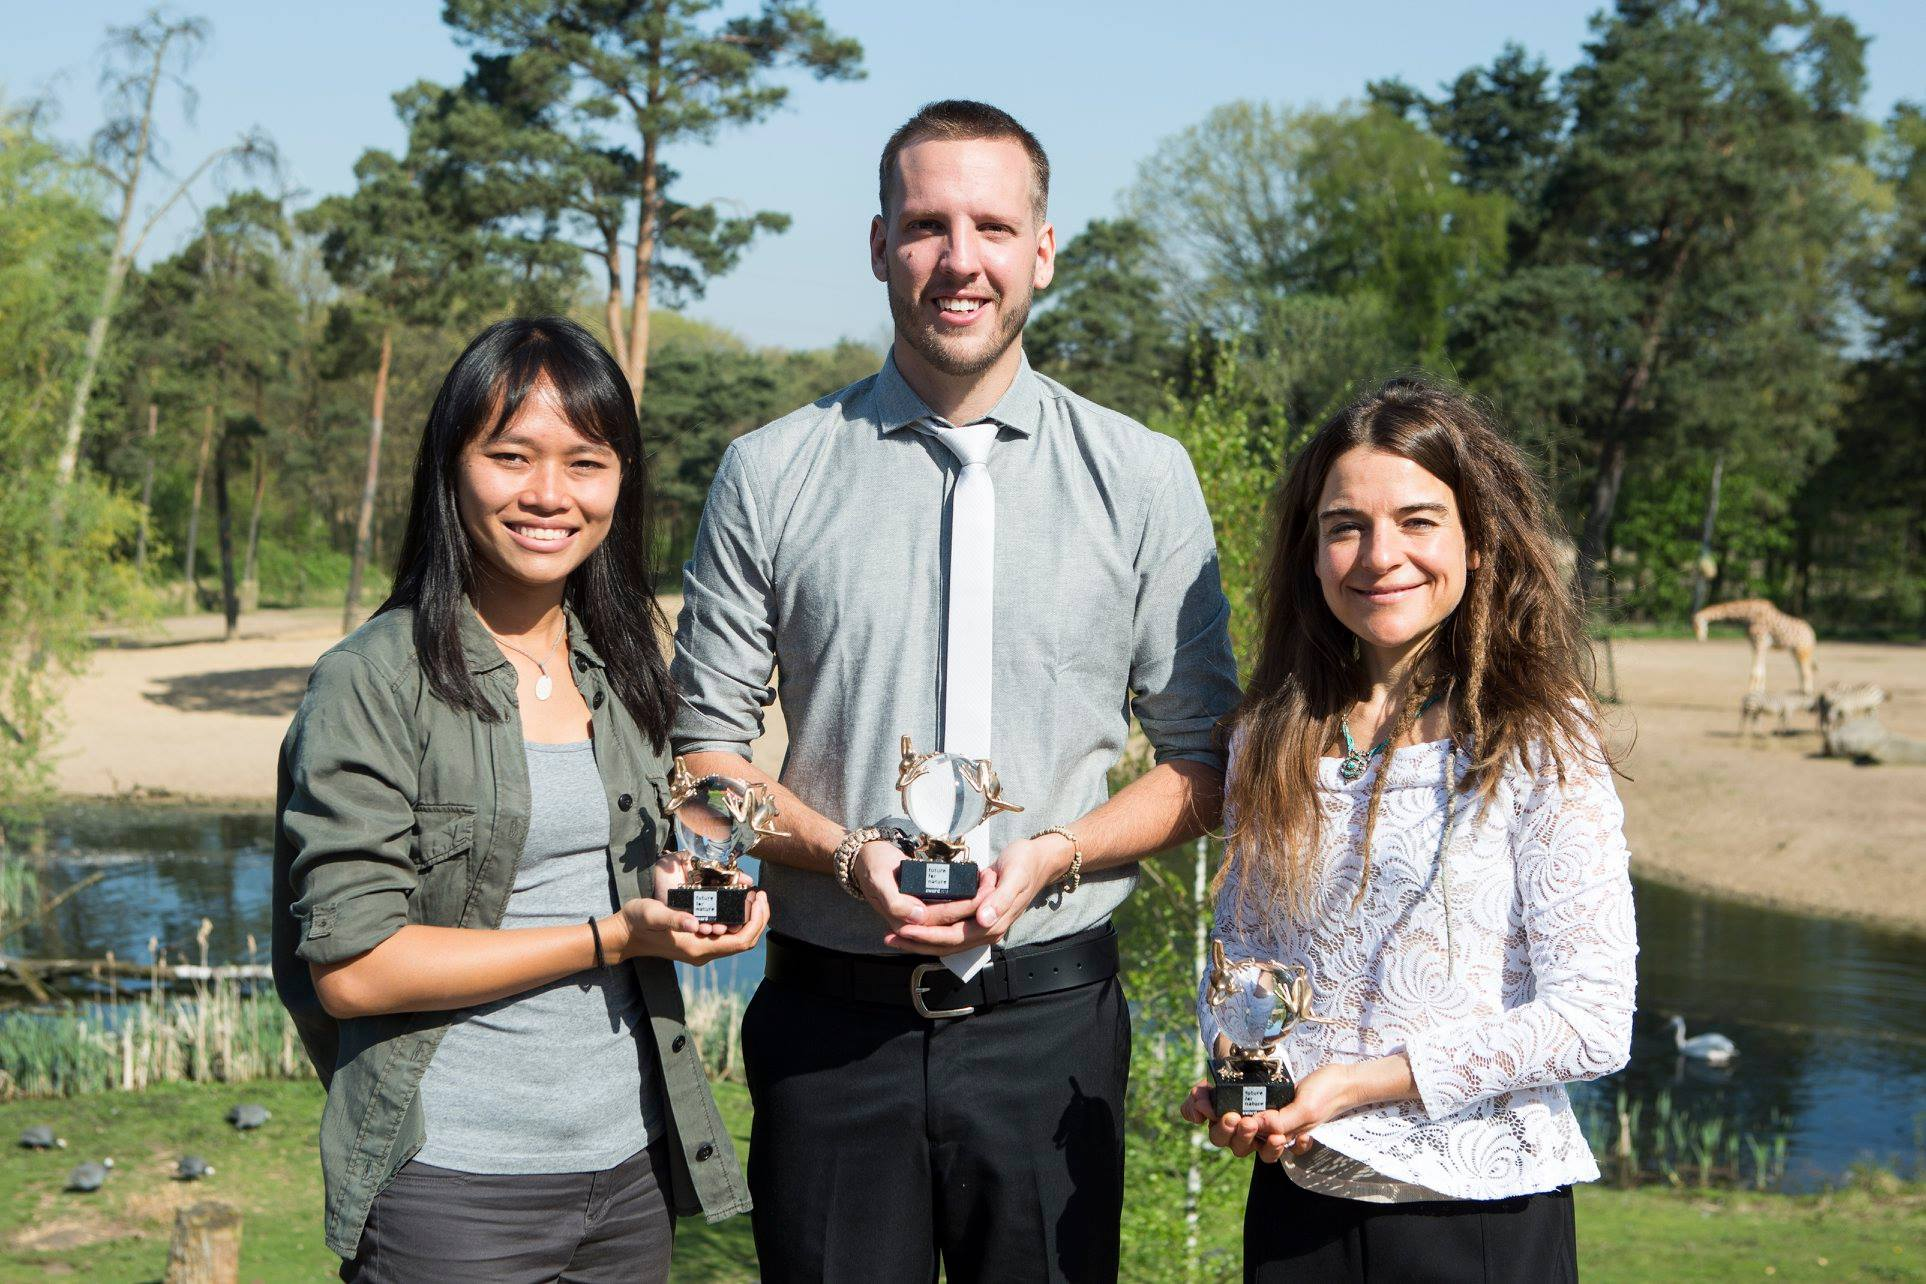 Adam (centre) with his Future for Nature award. Standing alongside him is fellow recipients Trang Nguyen (left) and Geraldine Werhahn (right).